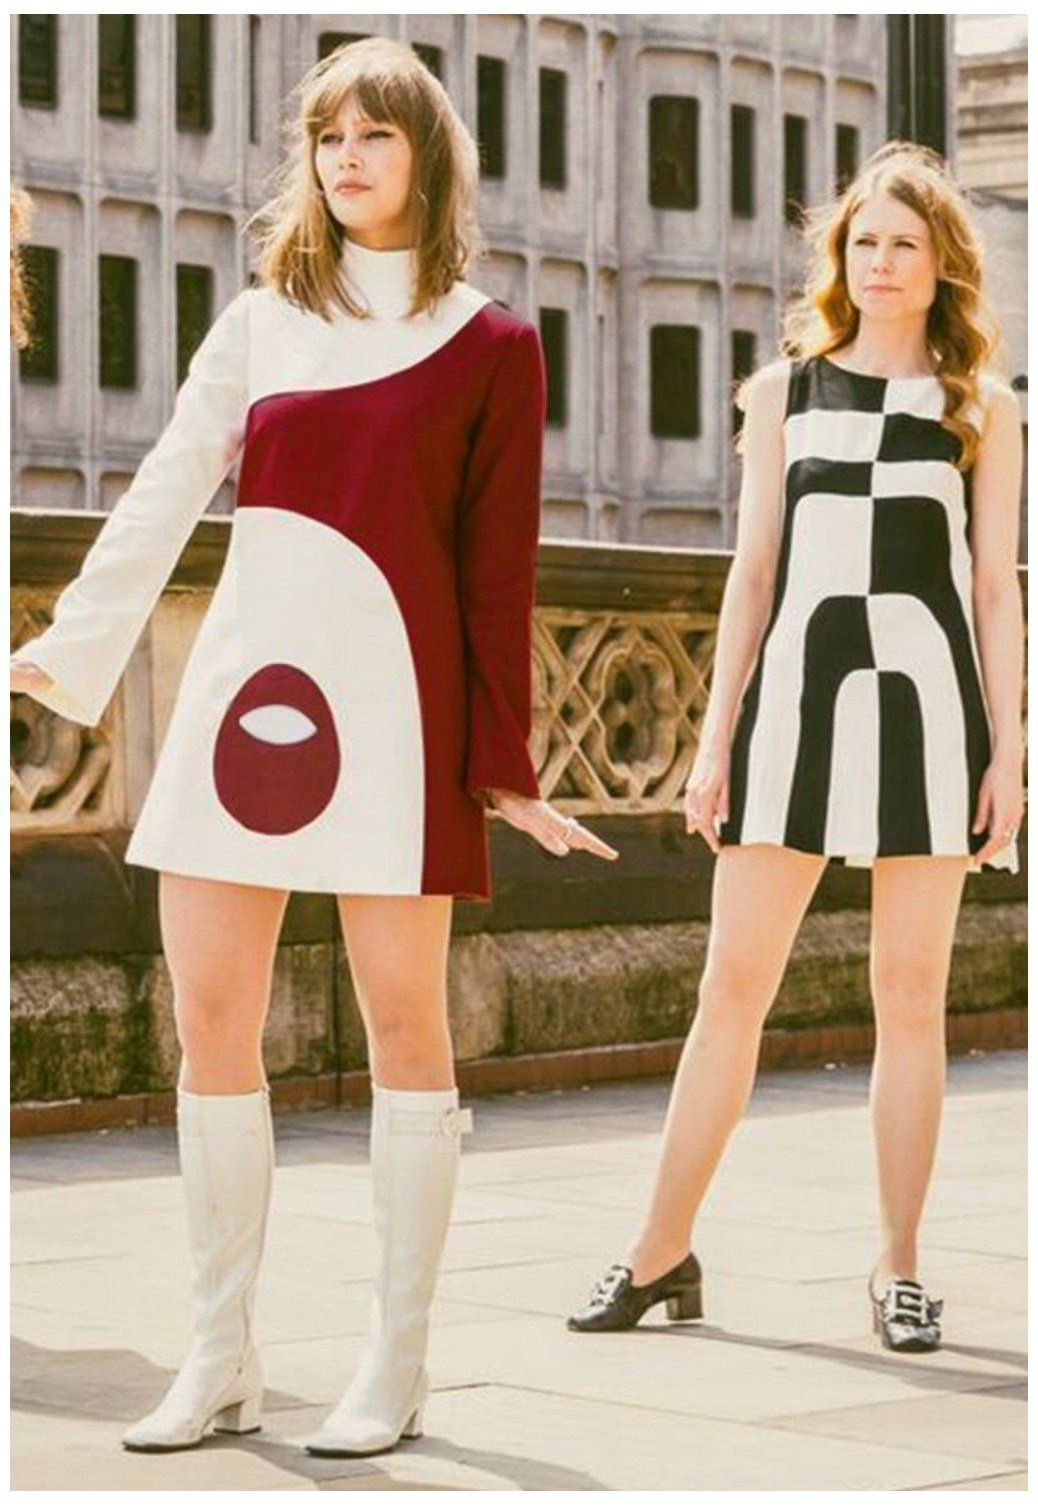 gogo boots outfit 60s